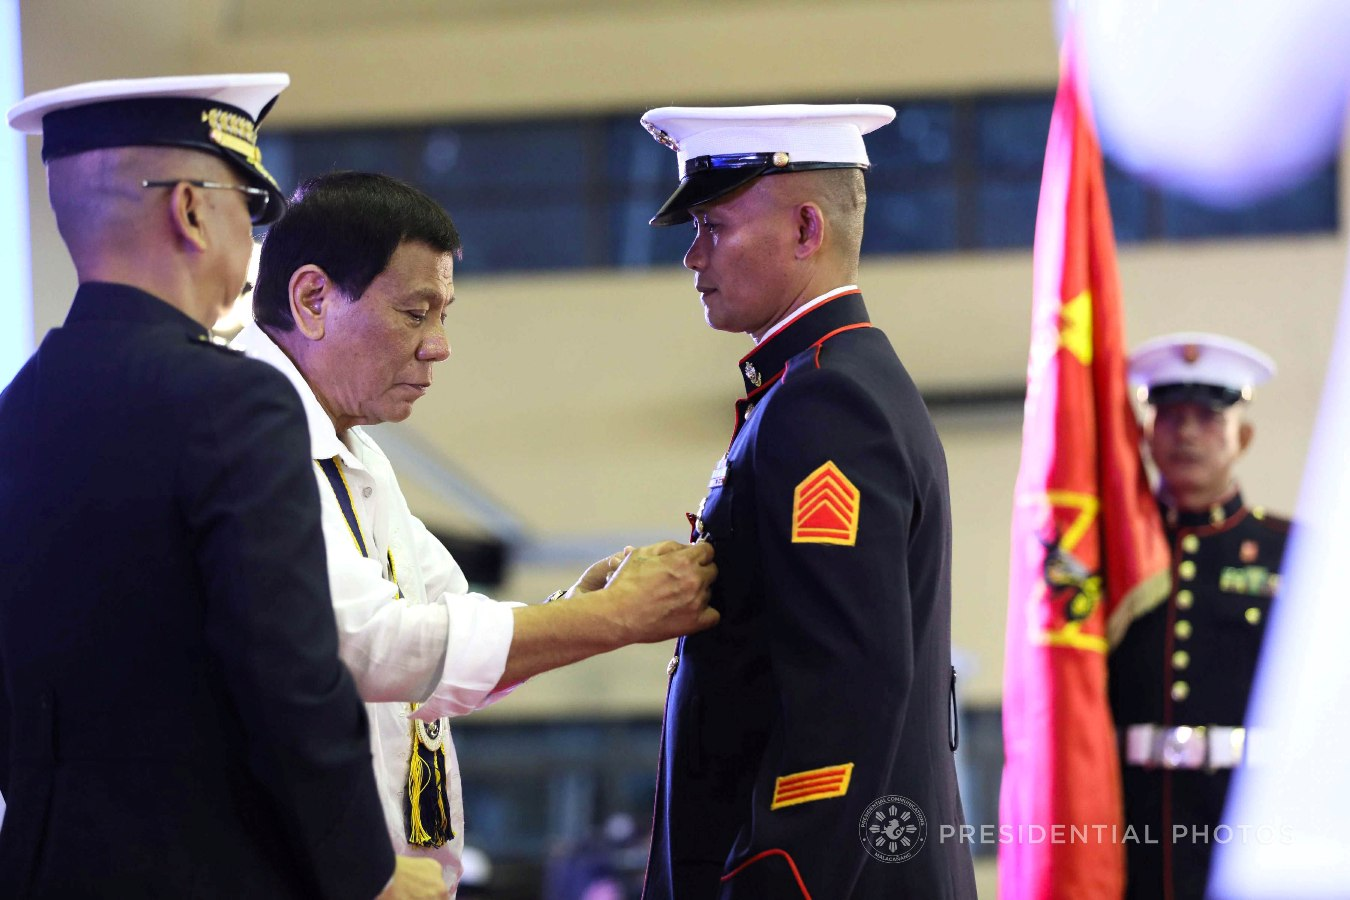 President Rodrigo Roa Duterte confers the Order of Lapu-Lapu Kamagi Medal and the Bronze Cross Medal on SSGt. Antonio Diva during the 67th Birthday celebration of the Philippine Marine Corps at the Bonifacio Naval Station in Fort Bonifacio, Taguig City on November 7, 2017. Diva was hailed for his acts of heroism as member of the 16th Marine Company. ACE MORANDANTE/PRESIDENTIAL PHOTO